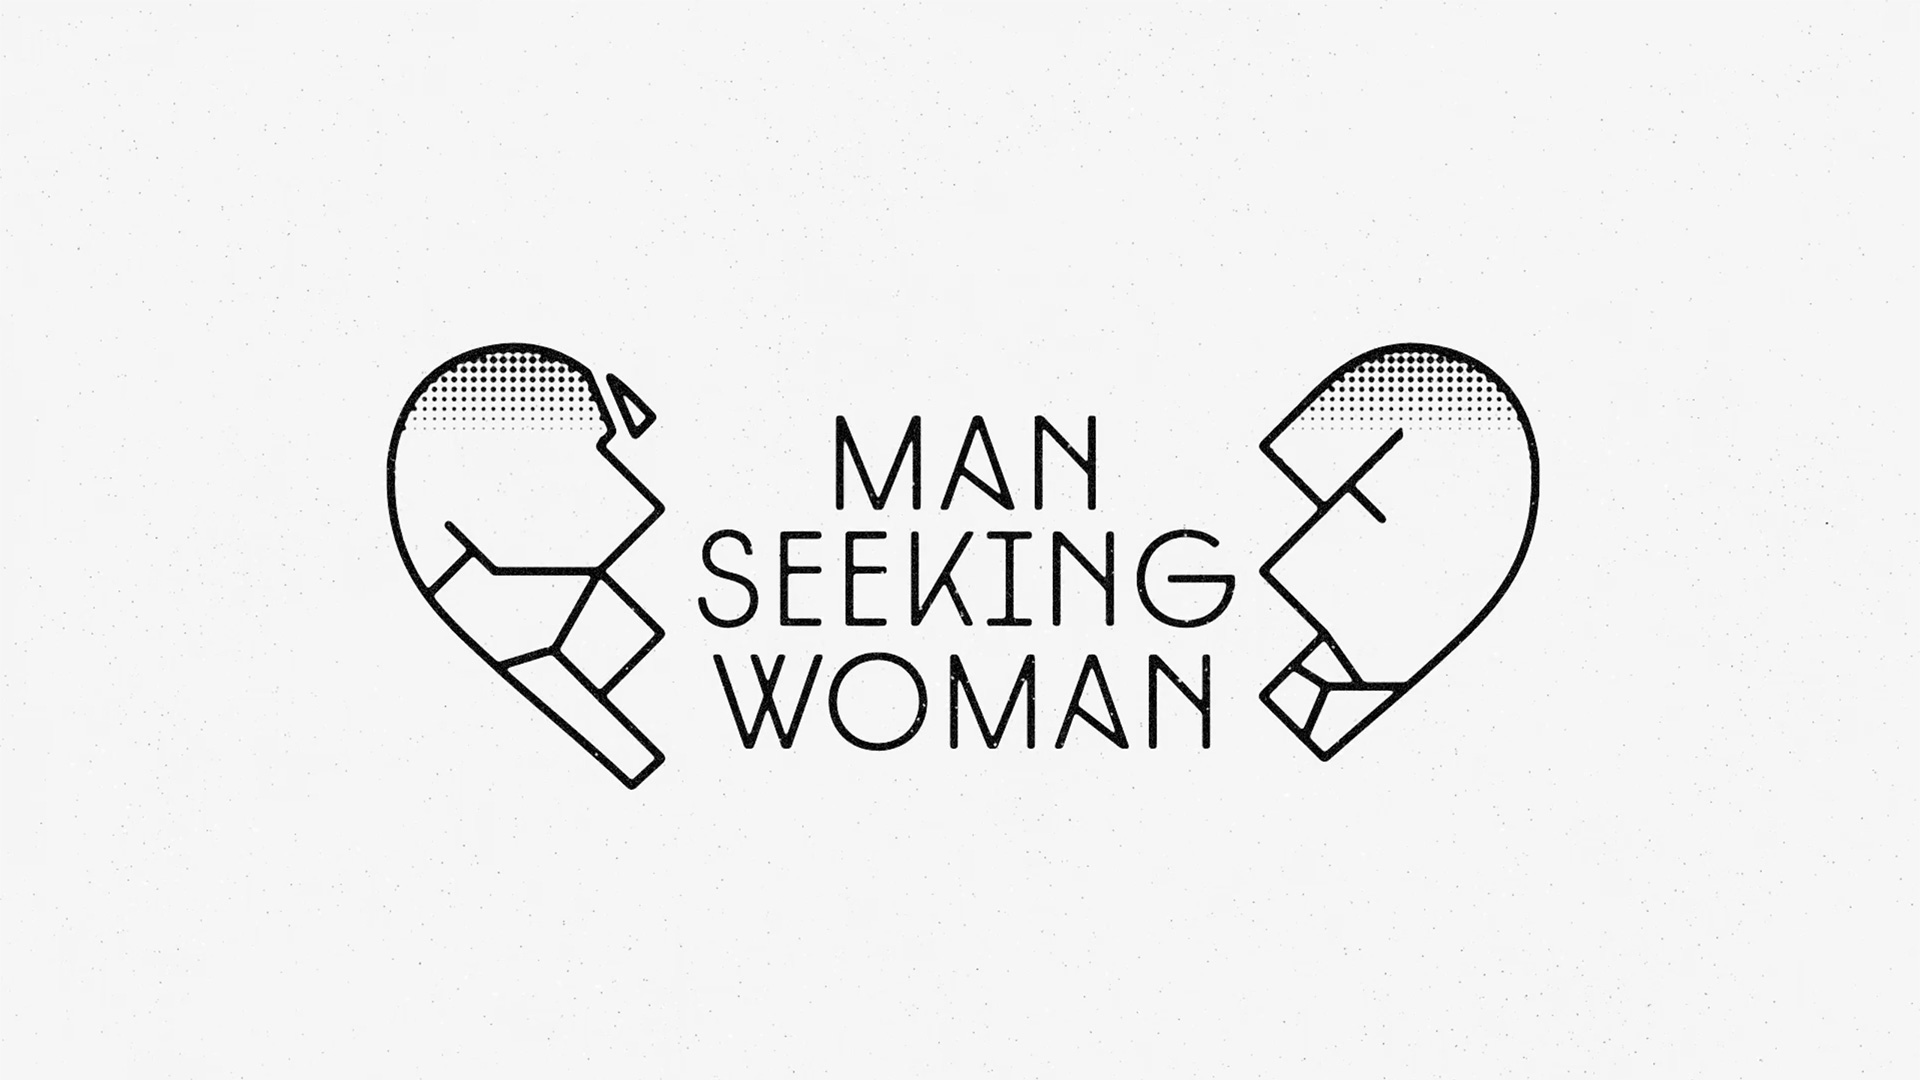 Movie men seeking women